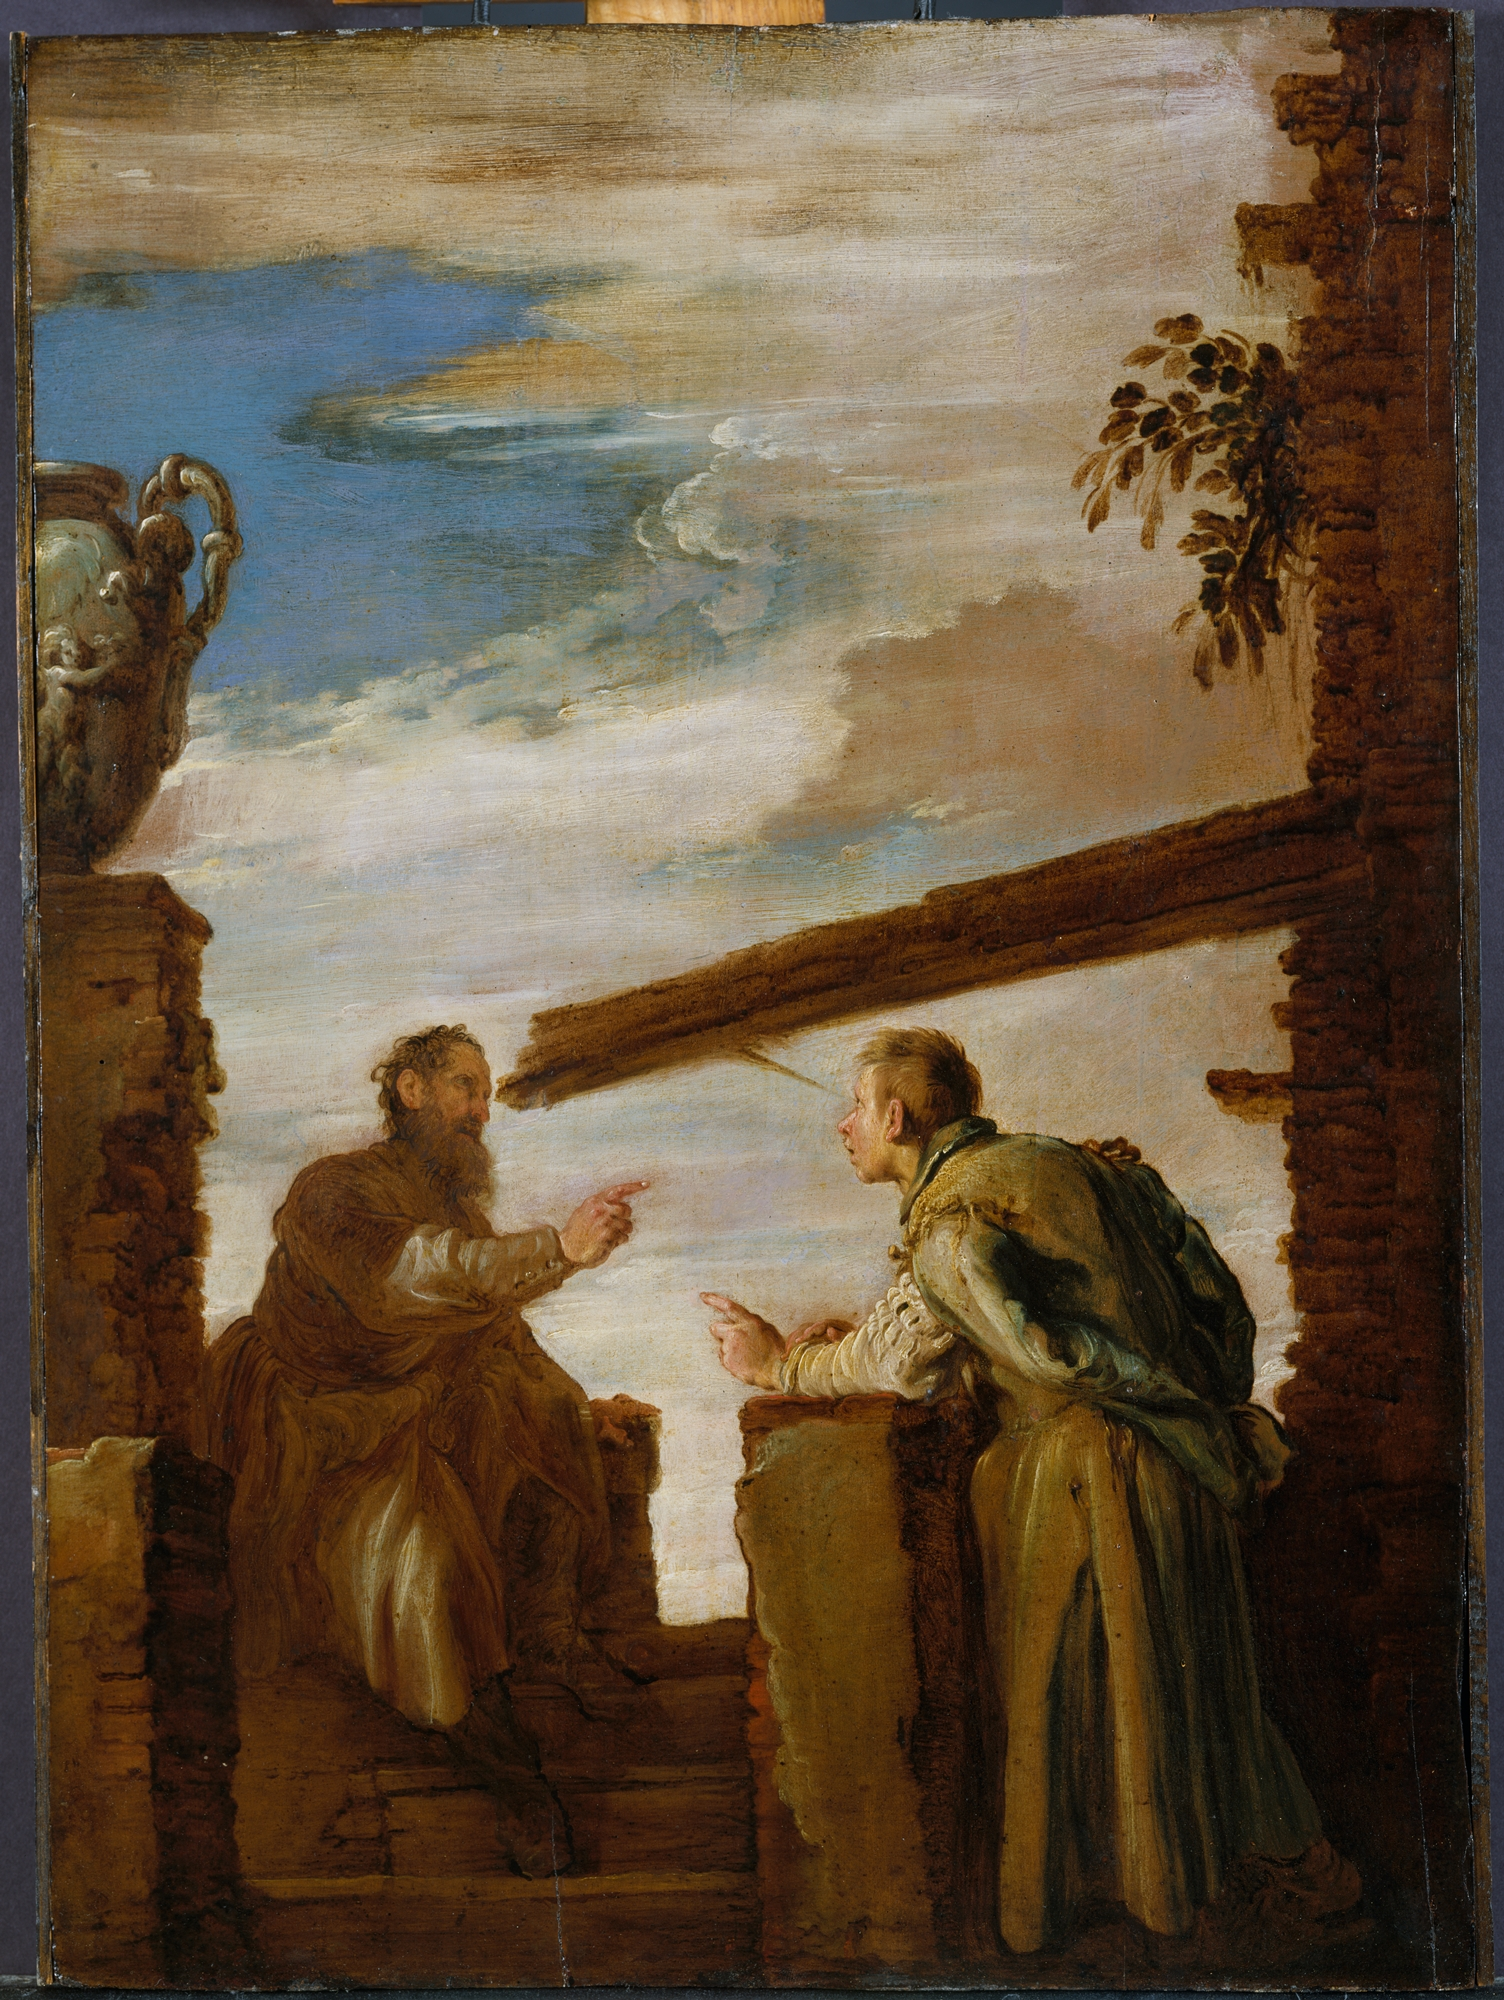 https://upload.wikimedia.org/wikipedia/commons/5/5f/Domenico_Fetti_-_The_Parable_of_the_Mote_and_the_Beam.jpg